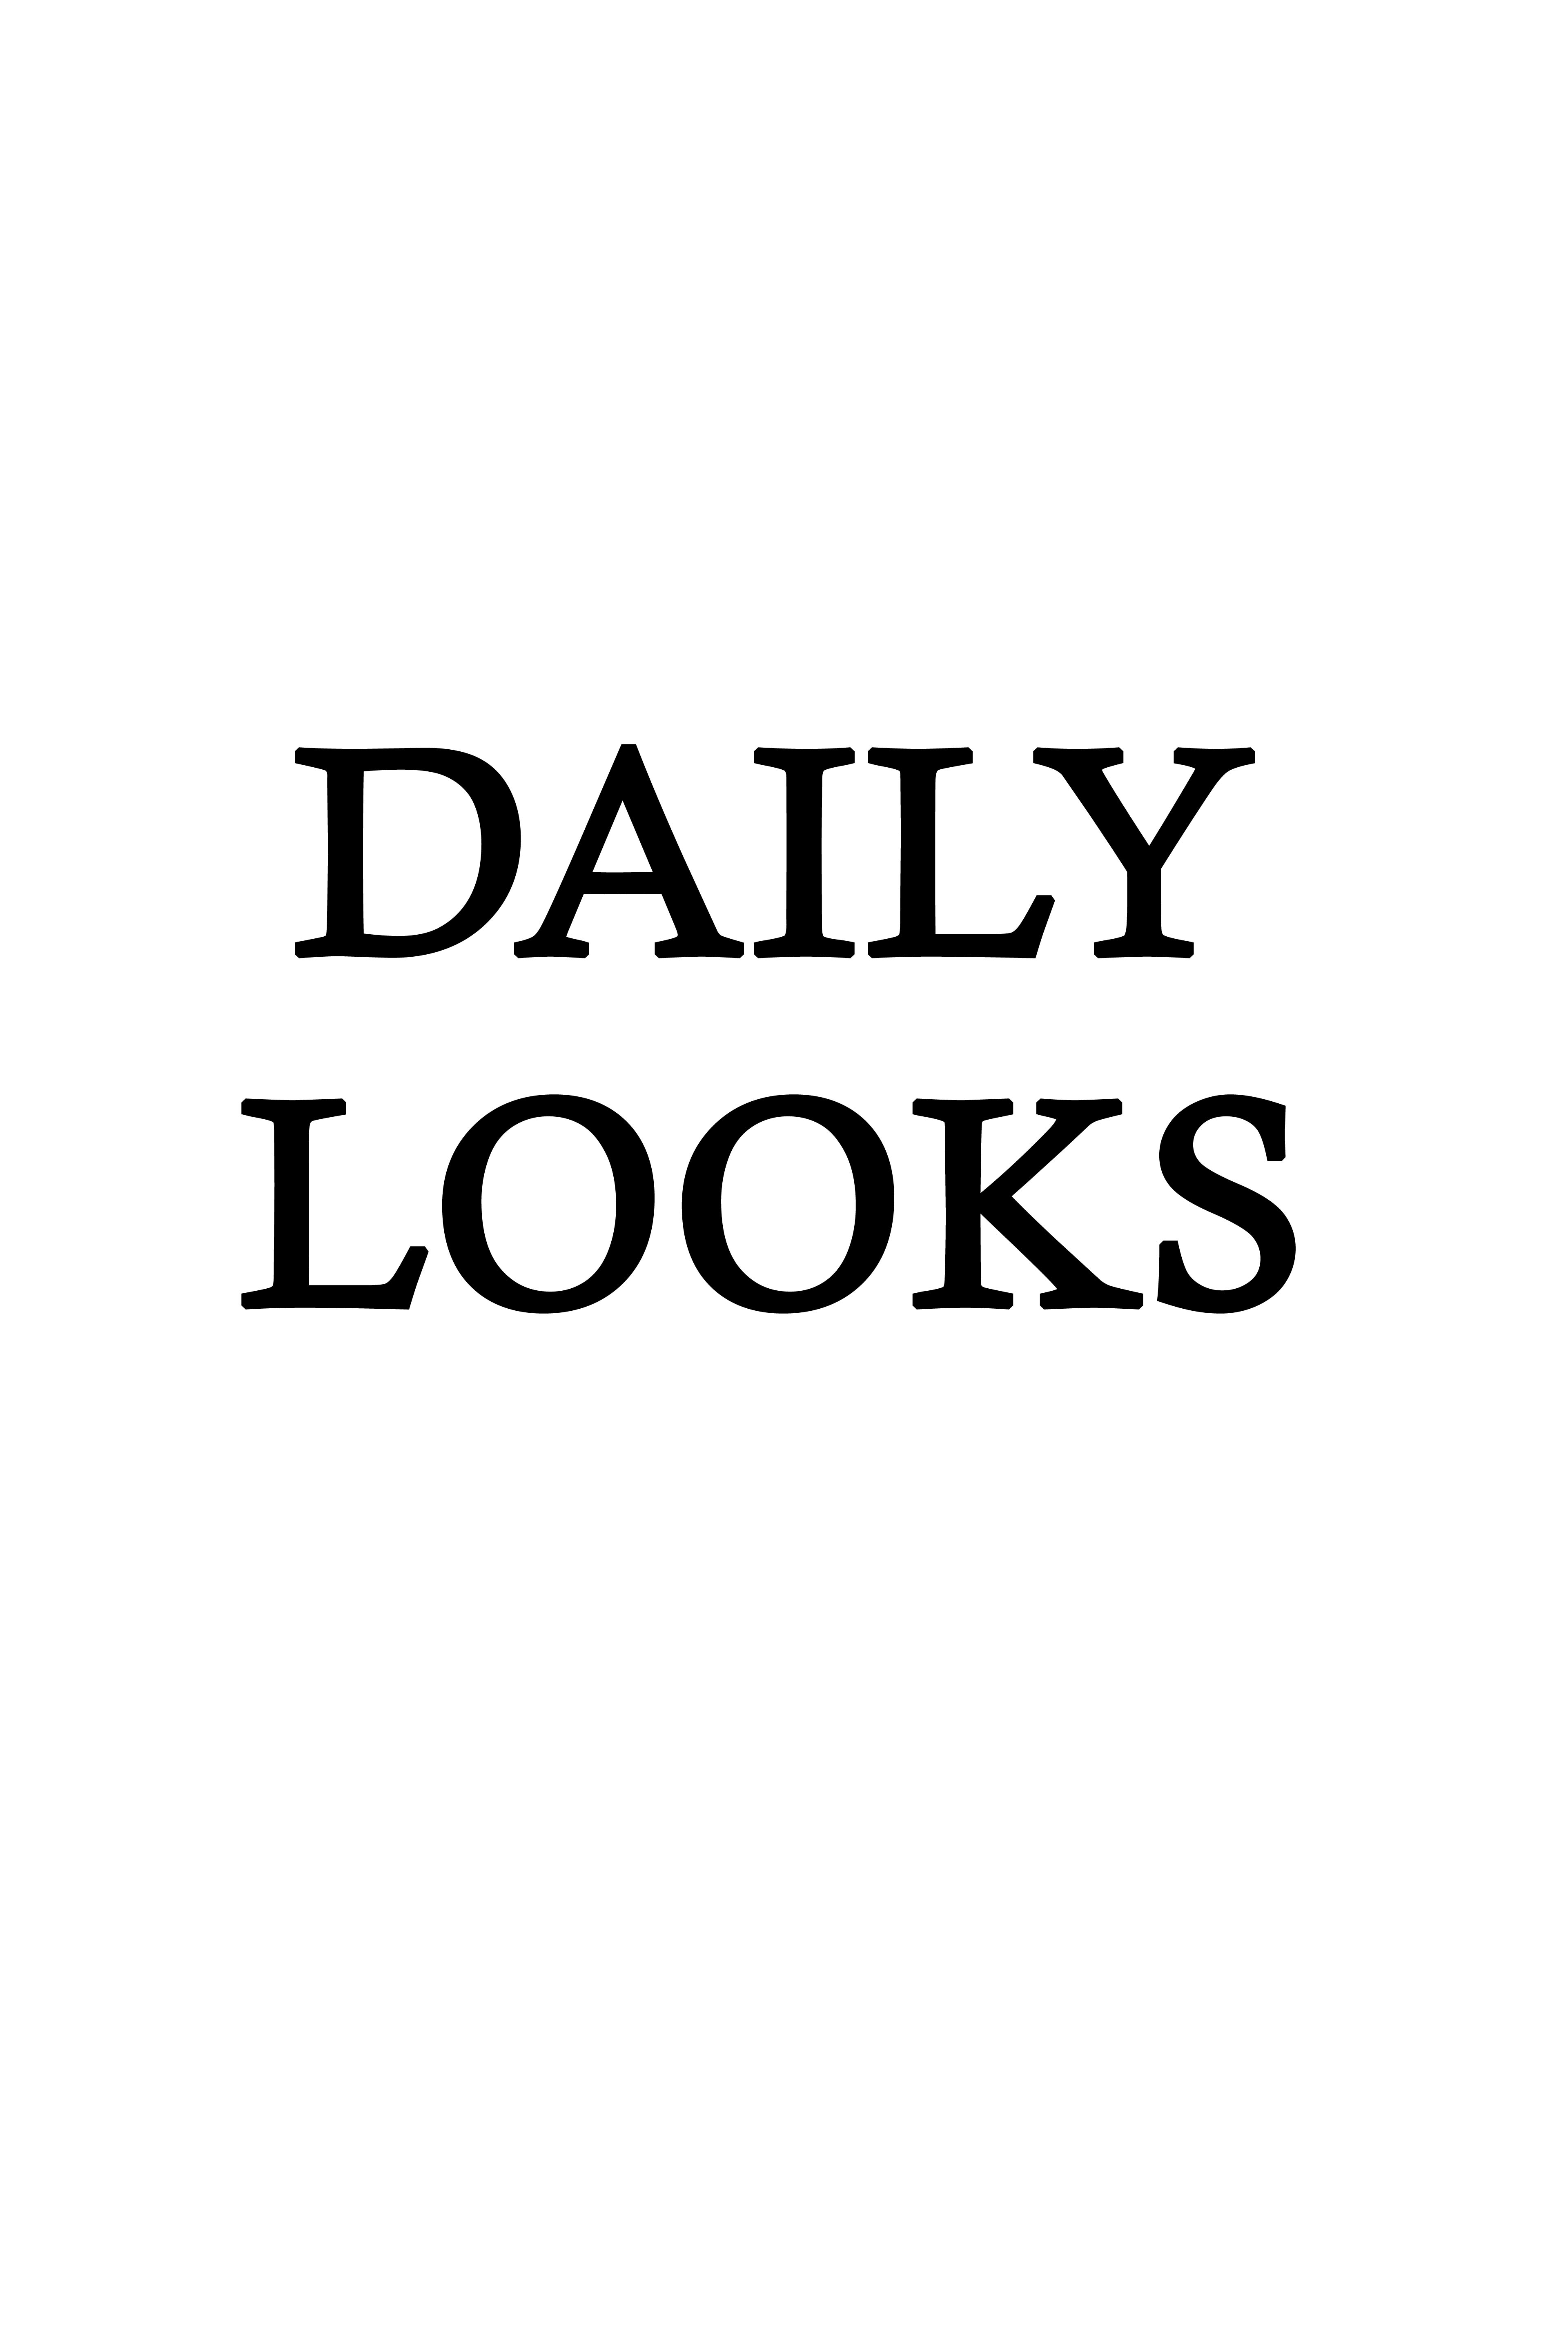 DAILY LOOKS TEXT